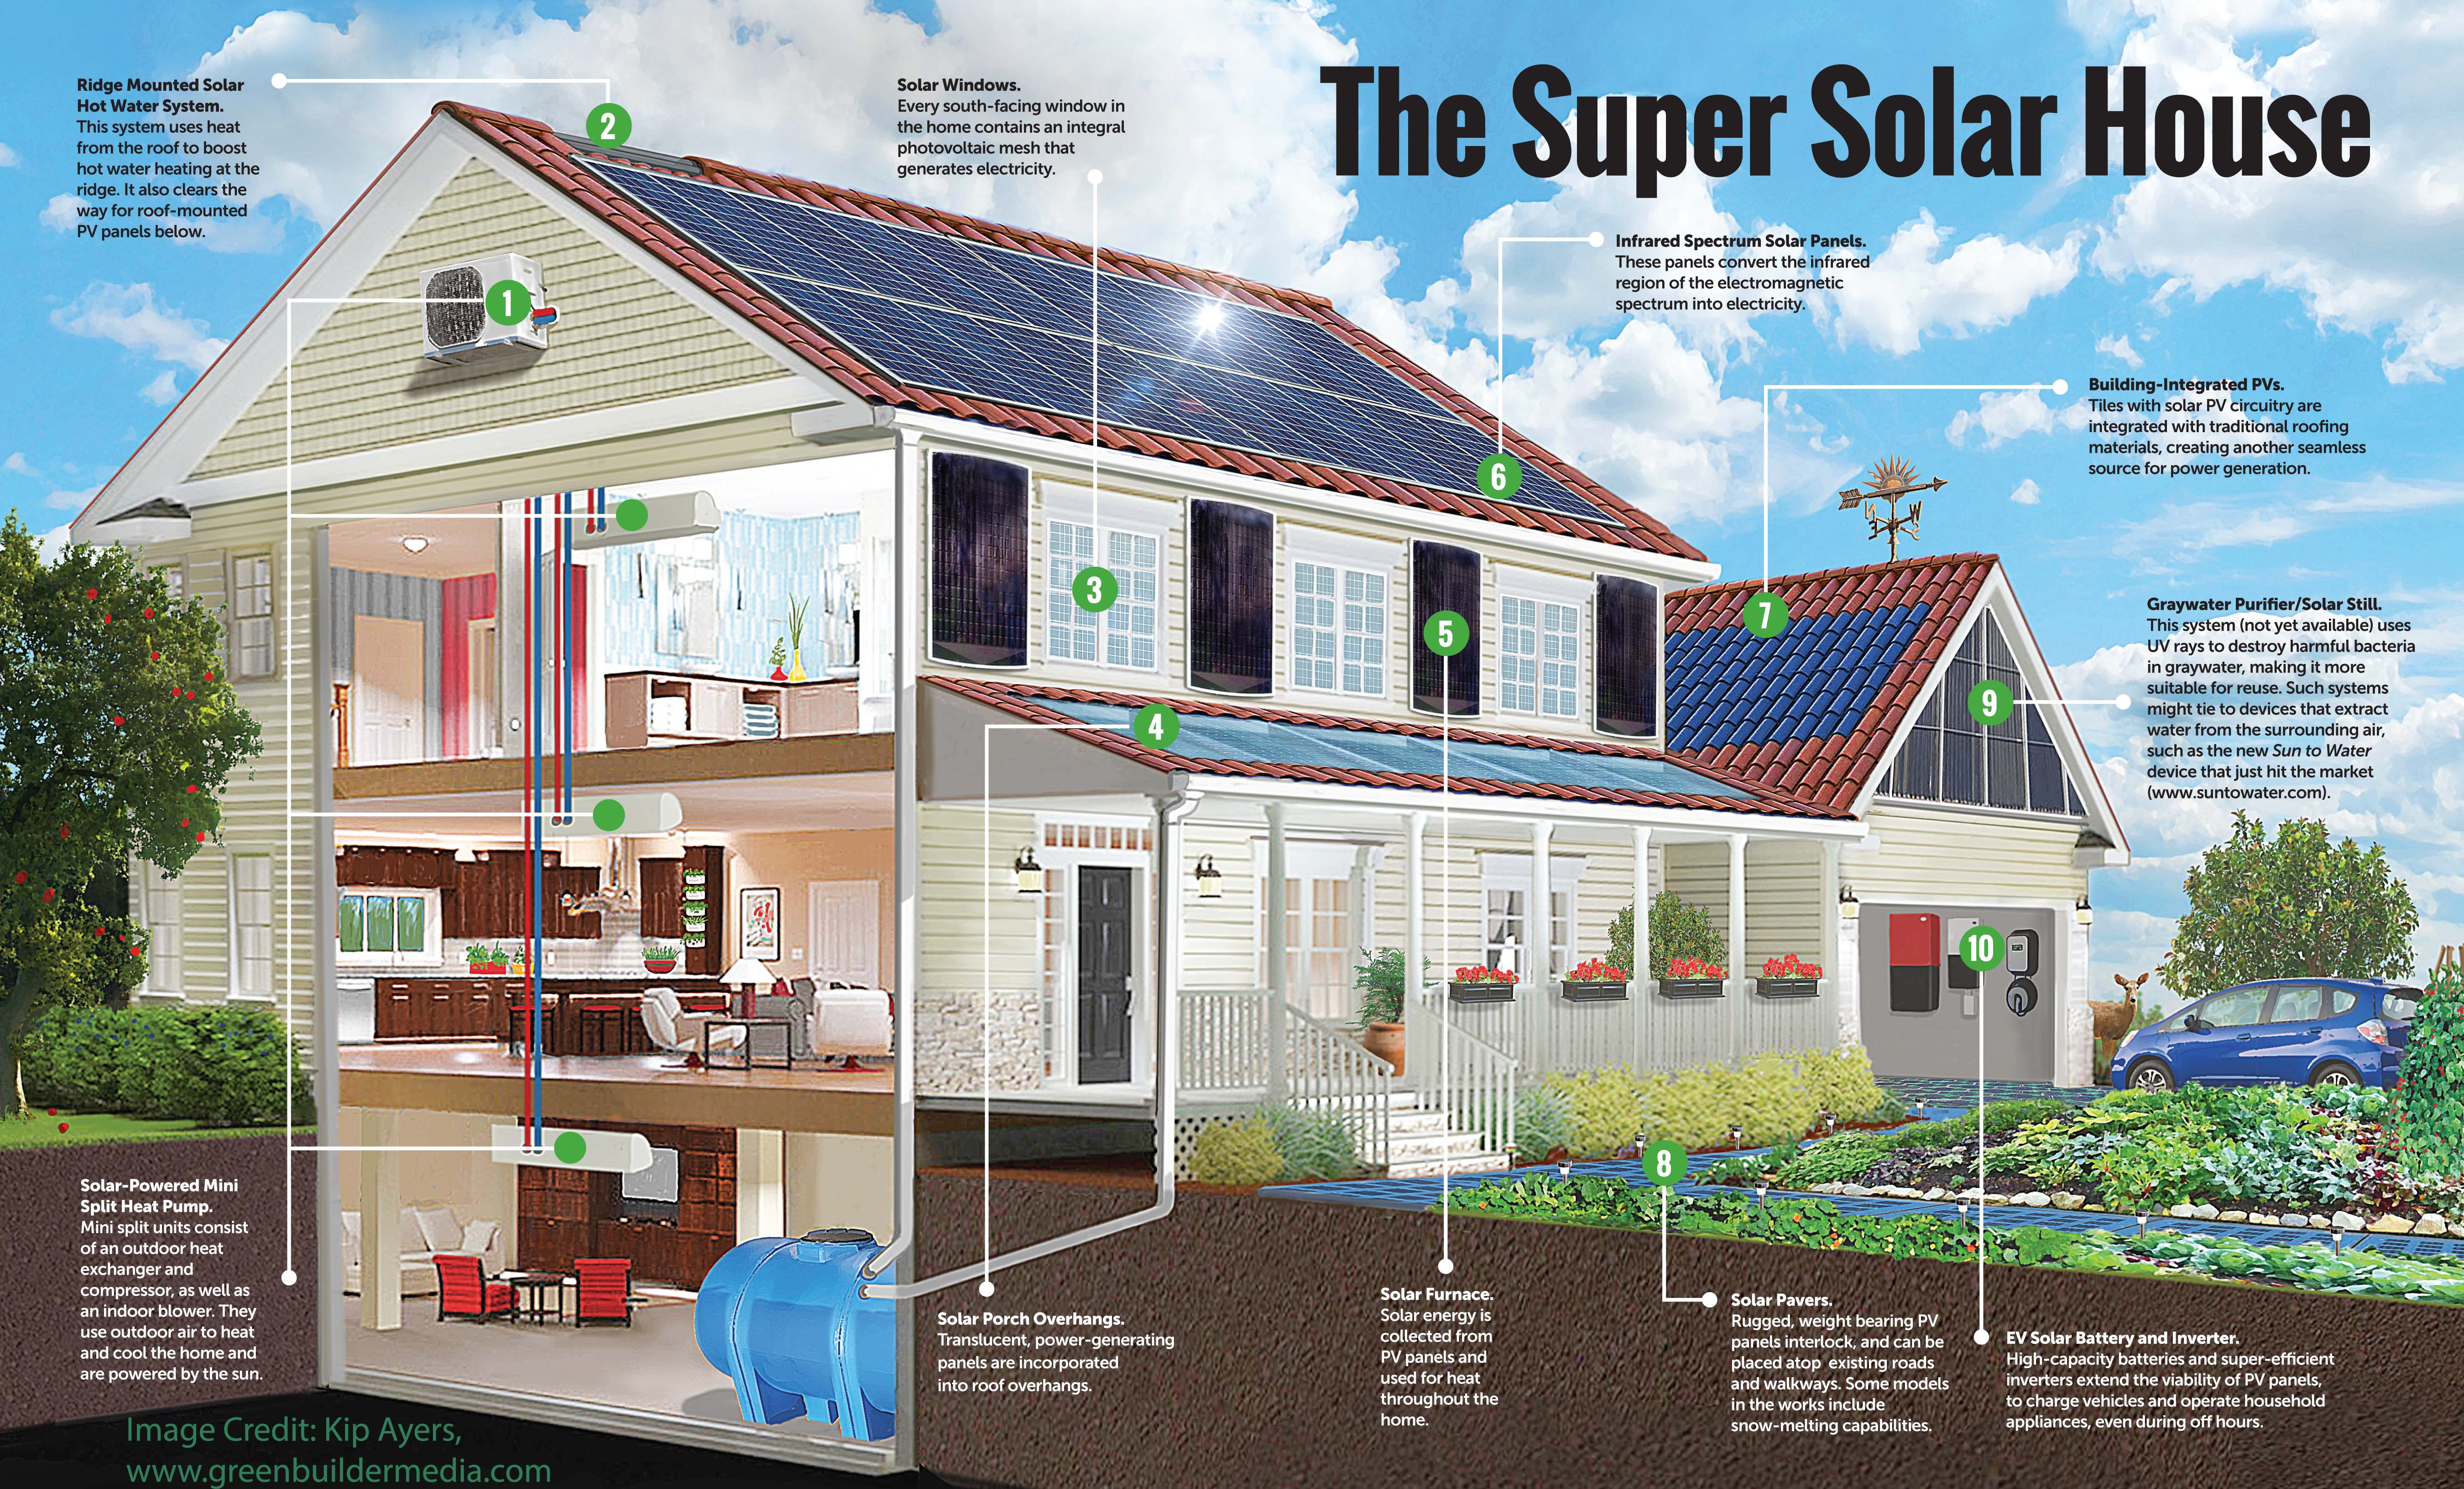 The Super Solar House